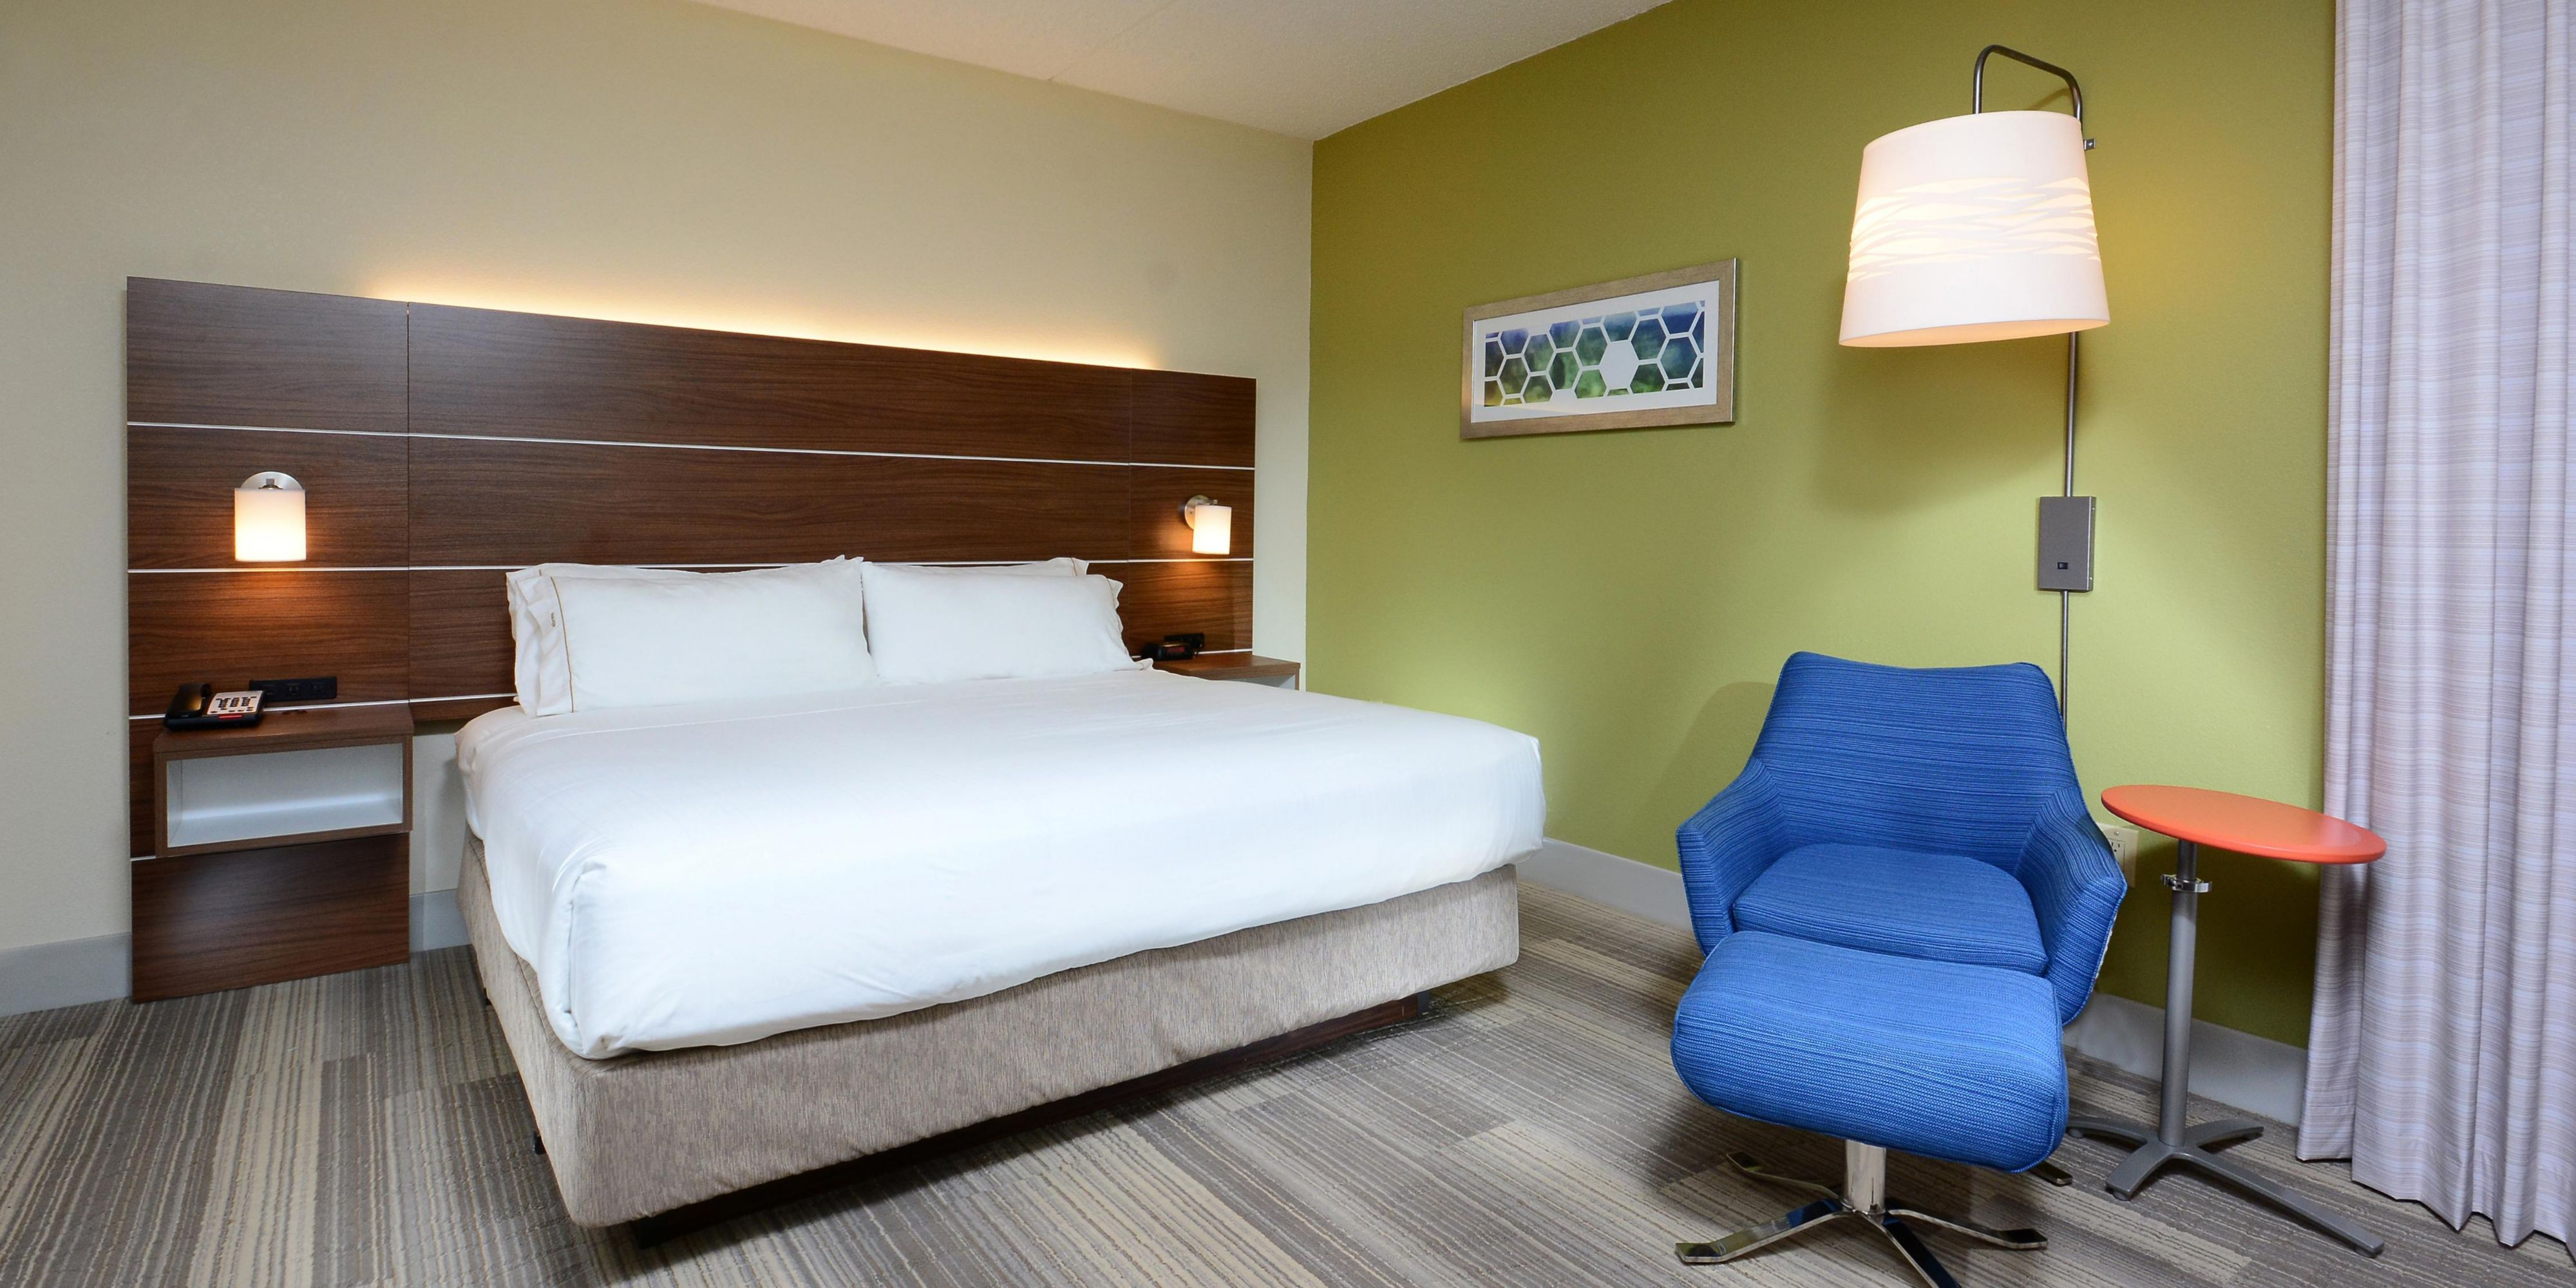 Holiday Inn Express And Suites Durham 4609421506 2x1